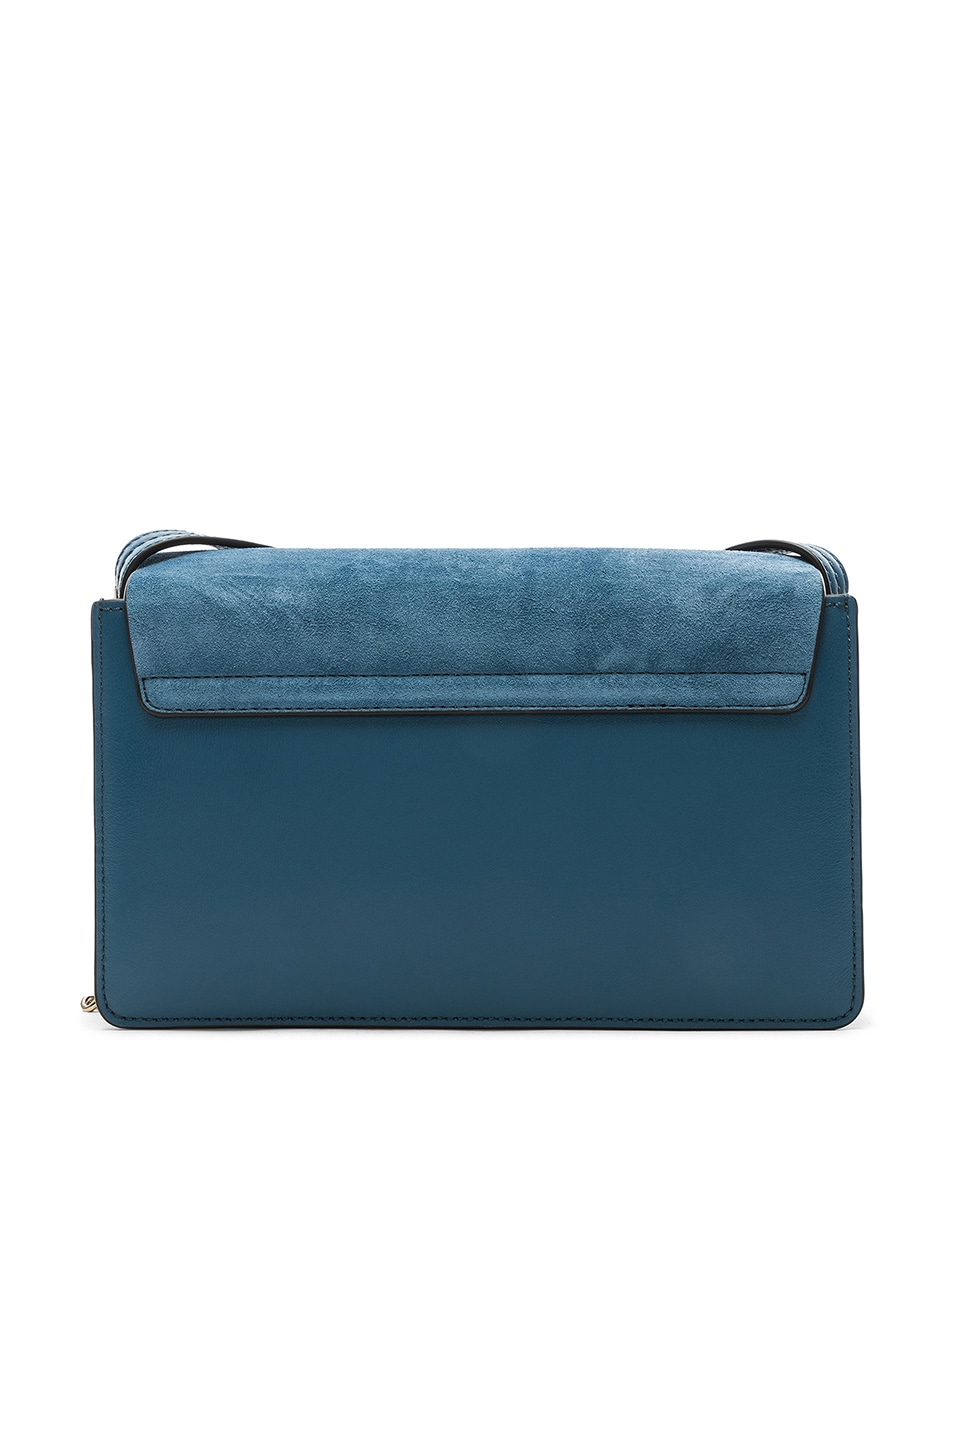 Image 2 of Chloe Small Faye Suede & Calfskin Shoulder Bag in Vinyl Blue